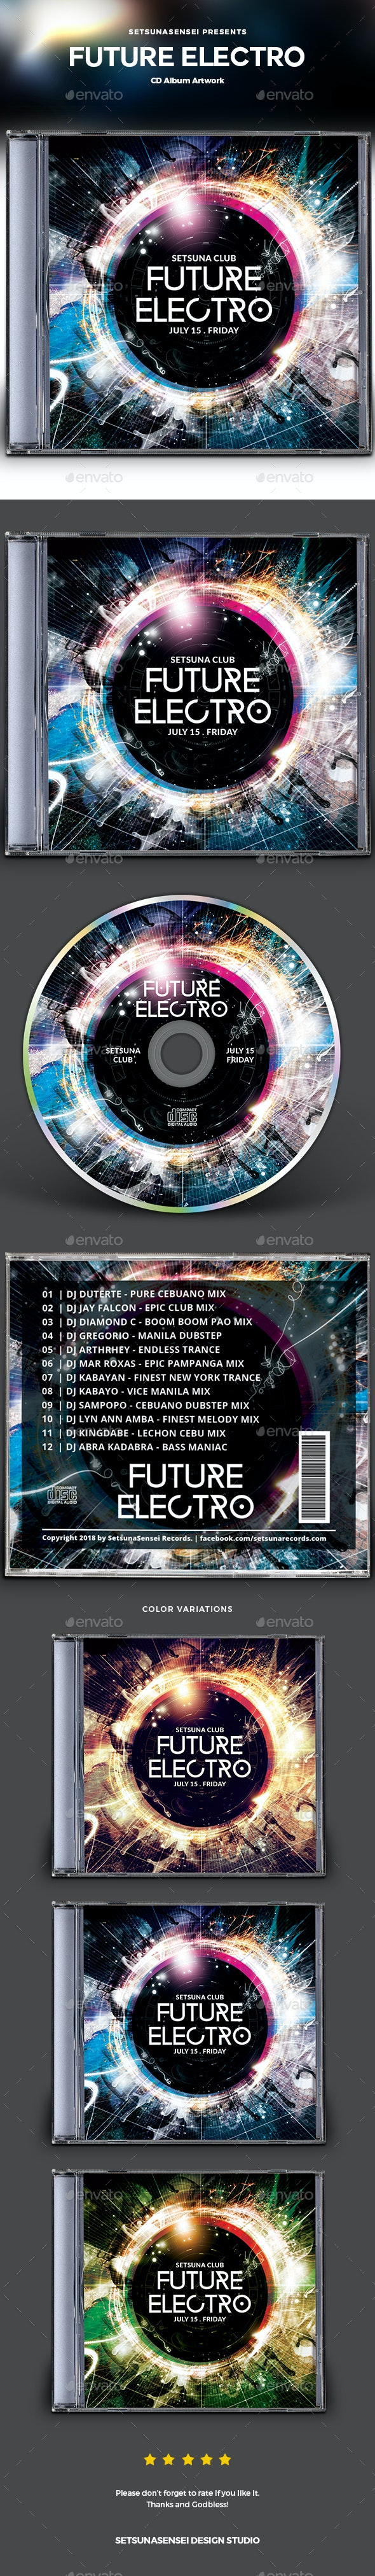 Future Electro CD Album Artwork - CD & DVD Artwork Print Templates